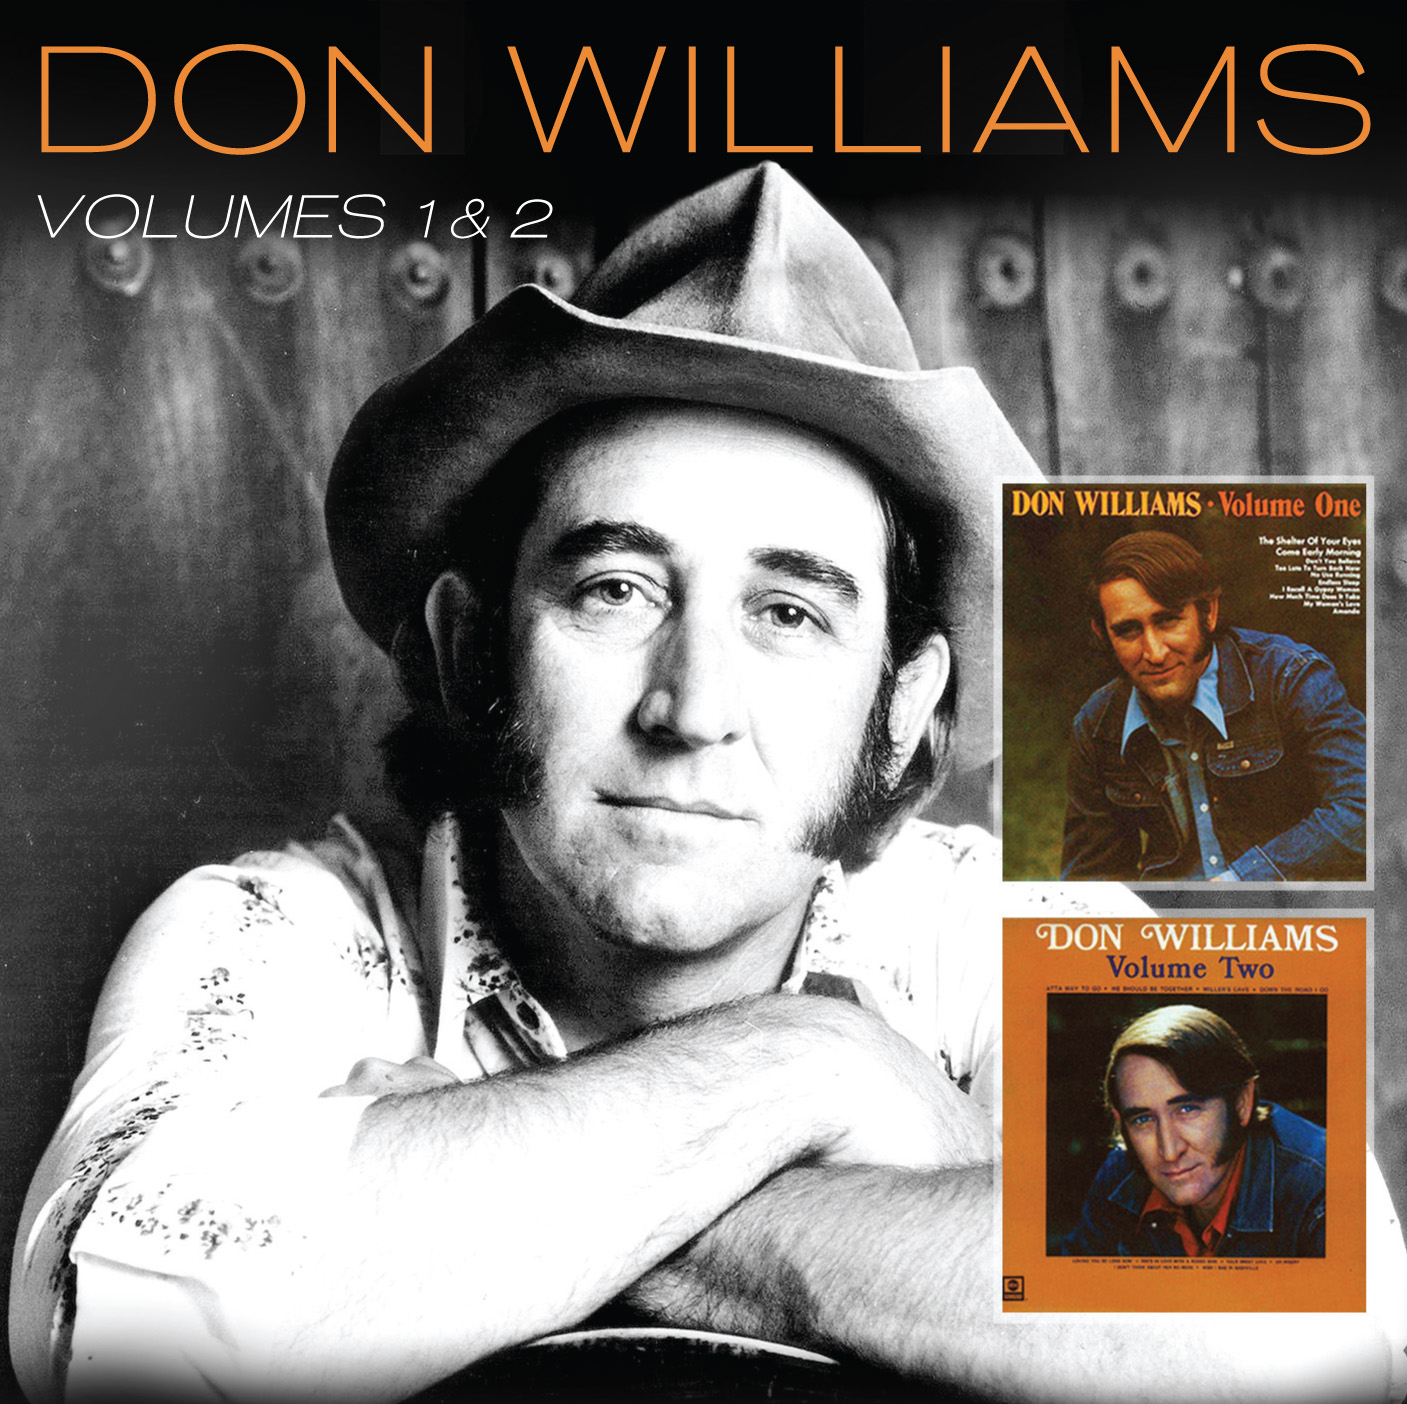 Don Williams - Volumes 1 & 2